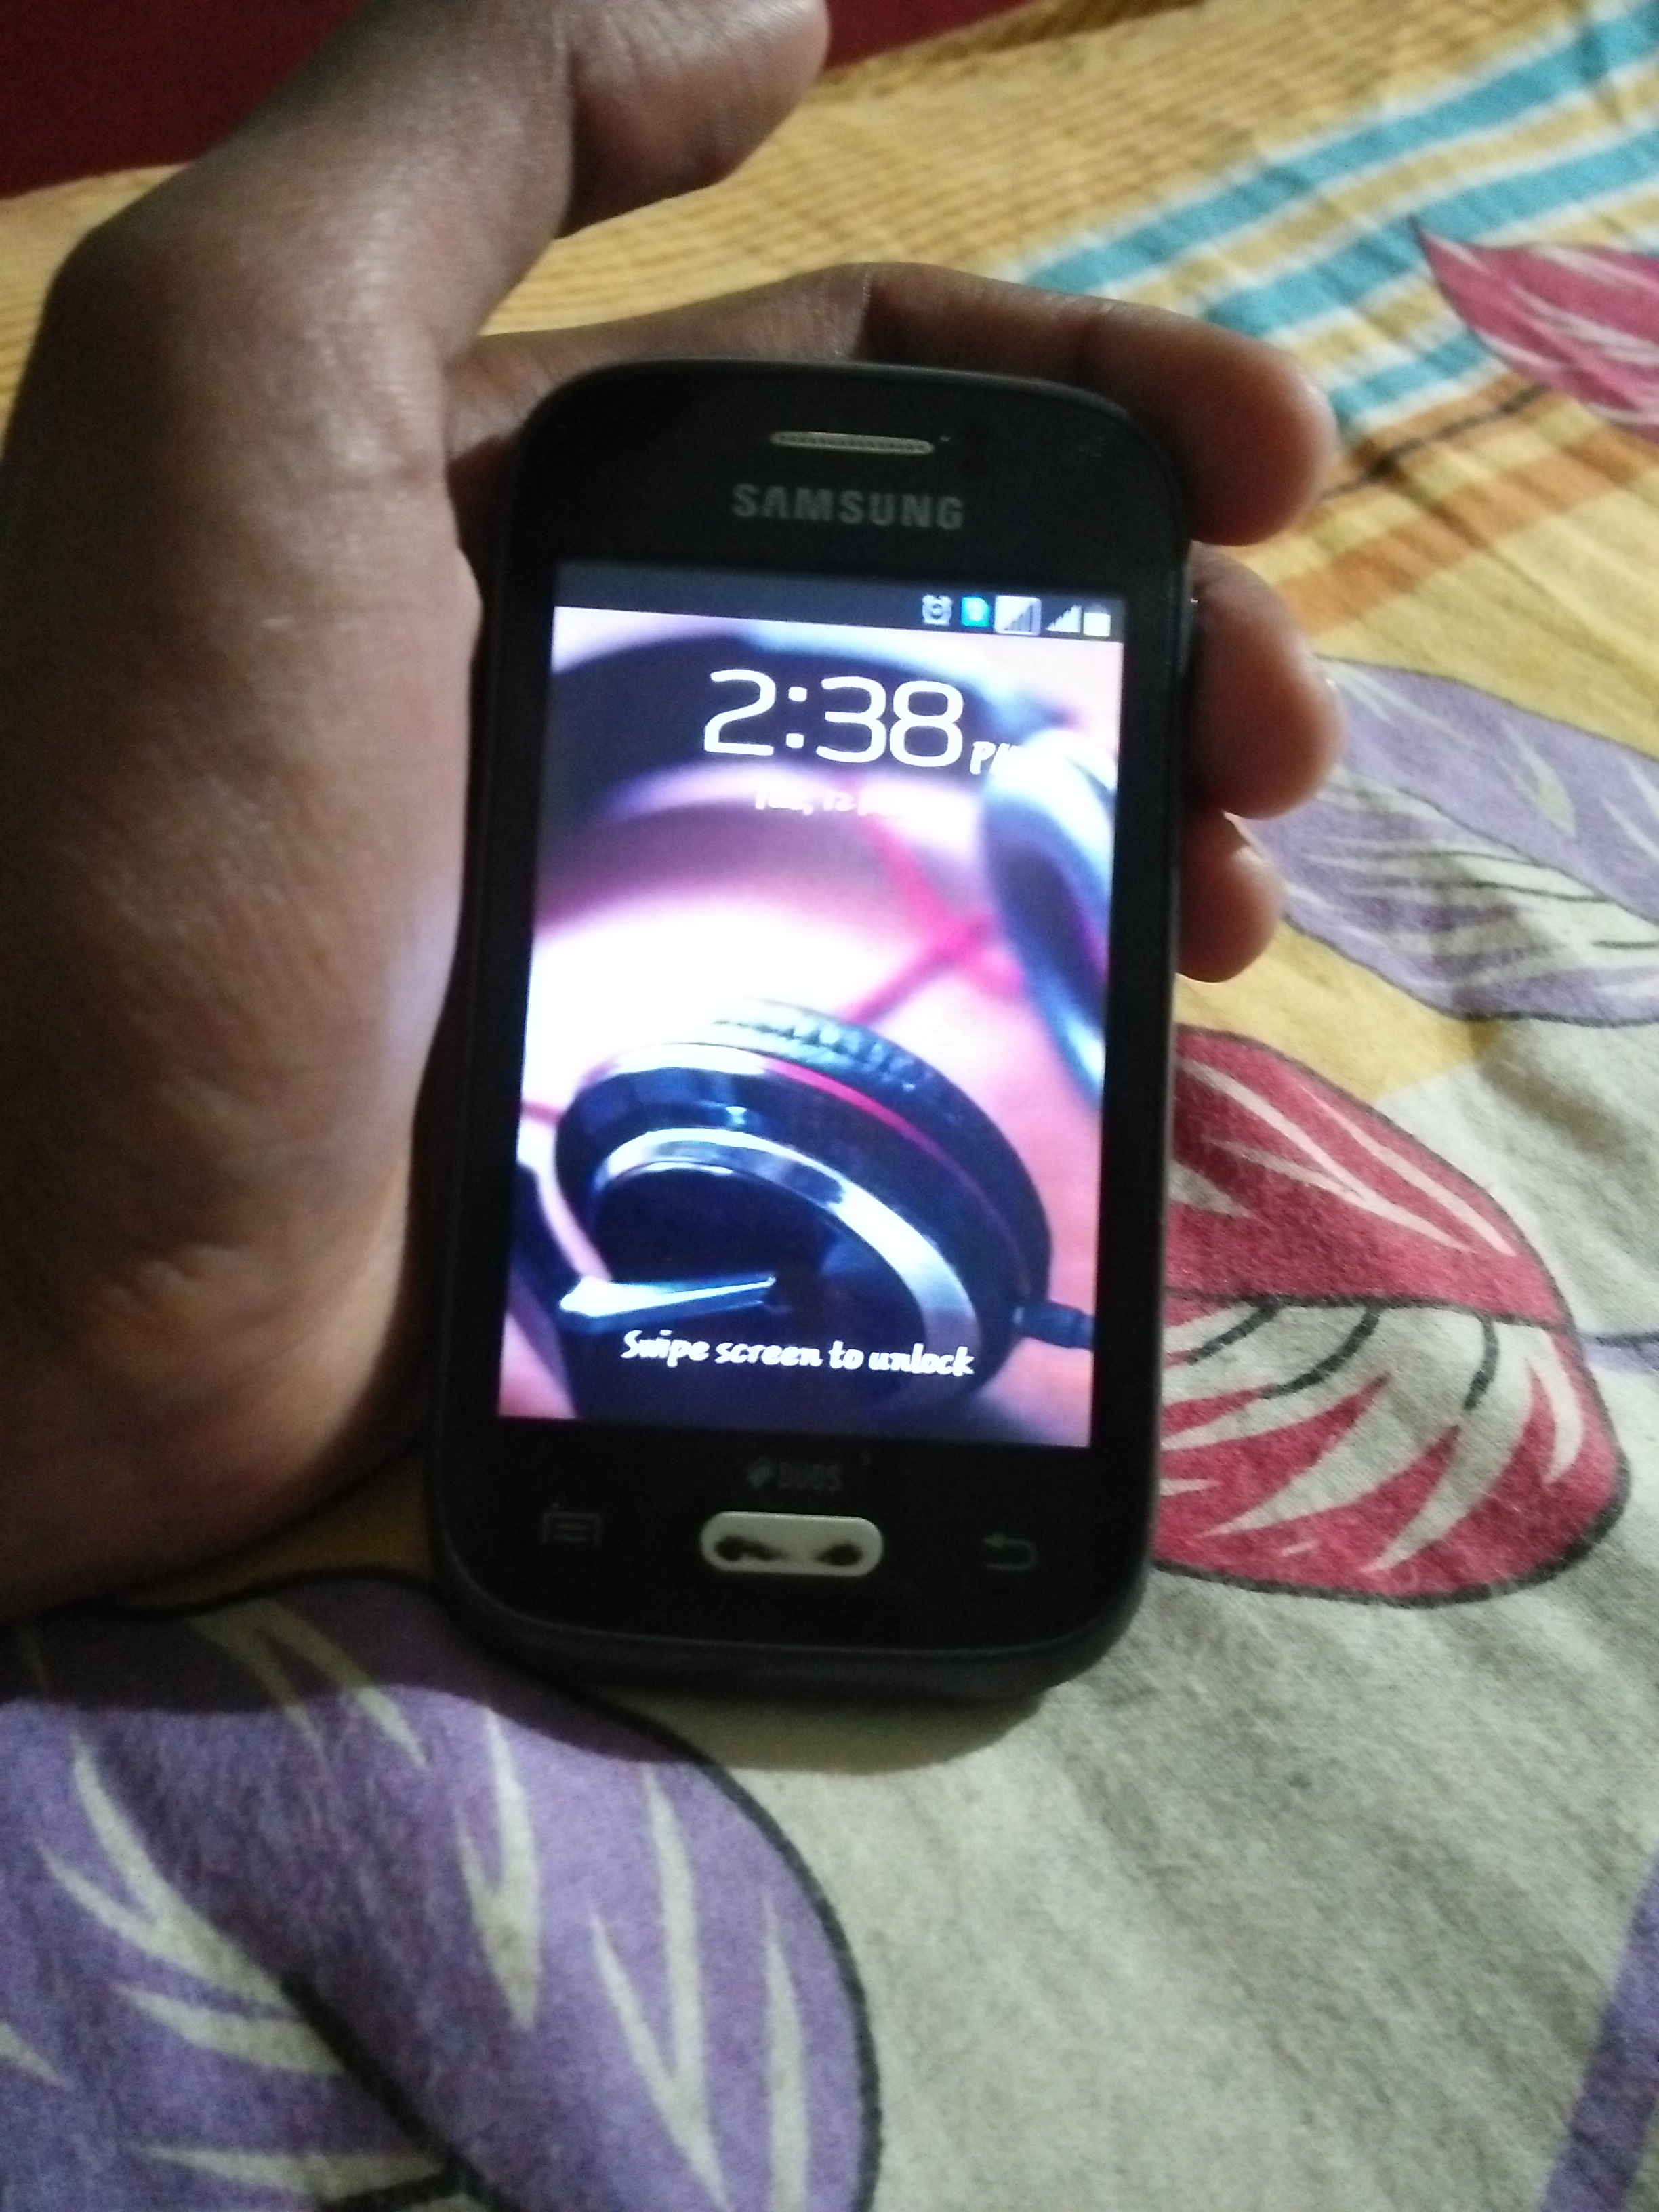 My First Smart Phone Samsung Galaxy Young S6310 User Review New Thank You Guys Rate